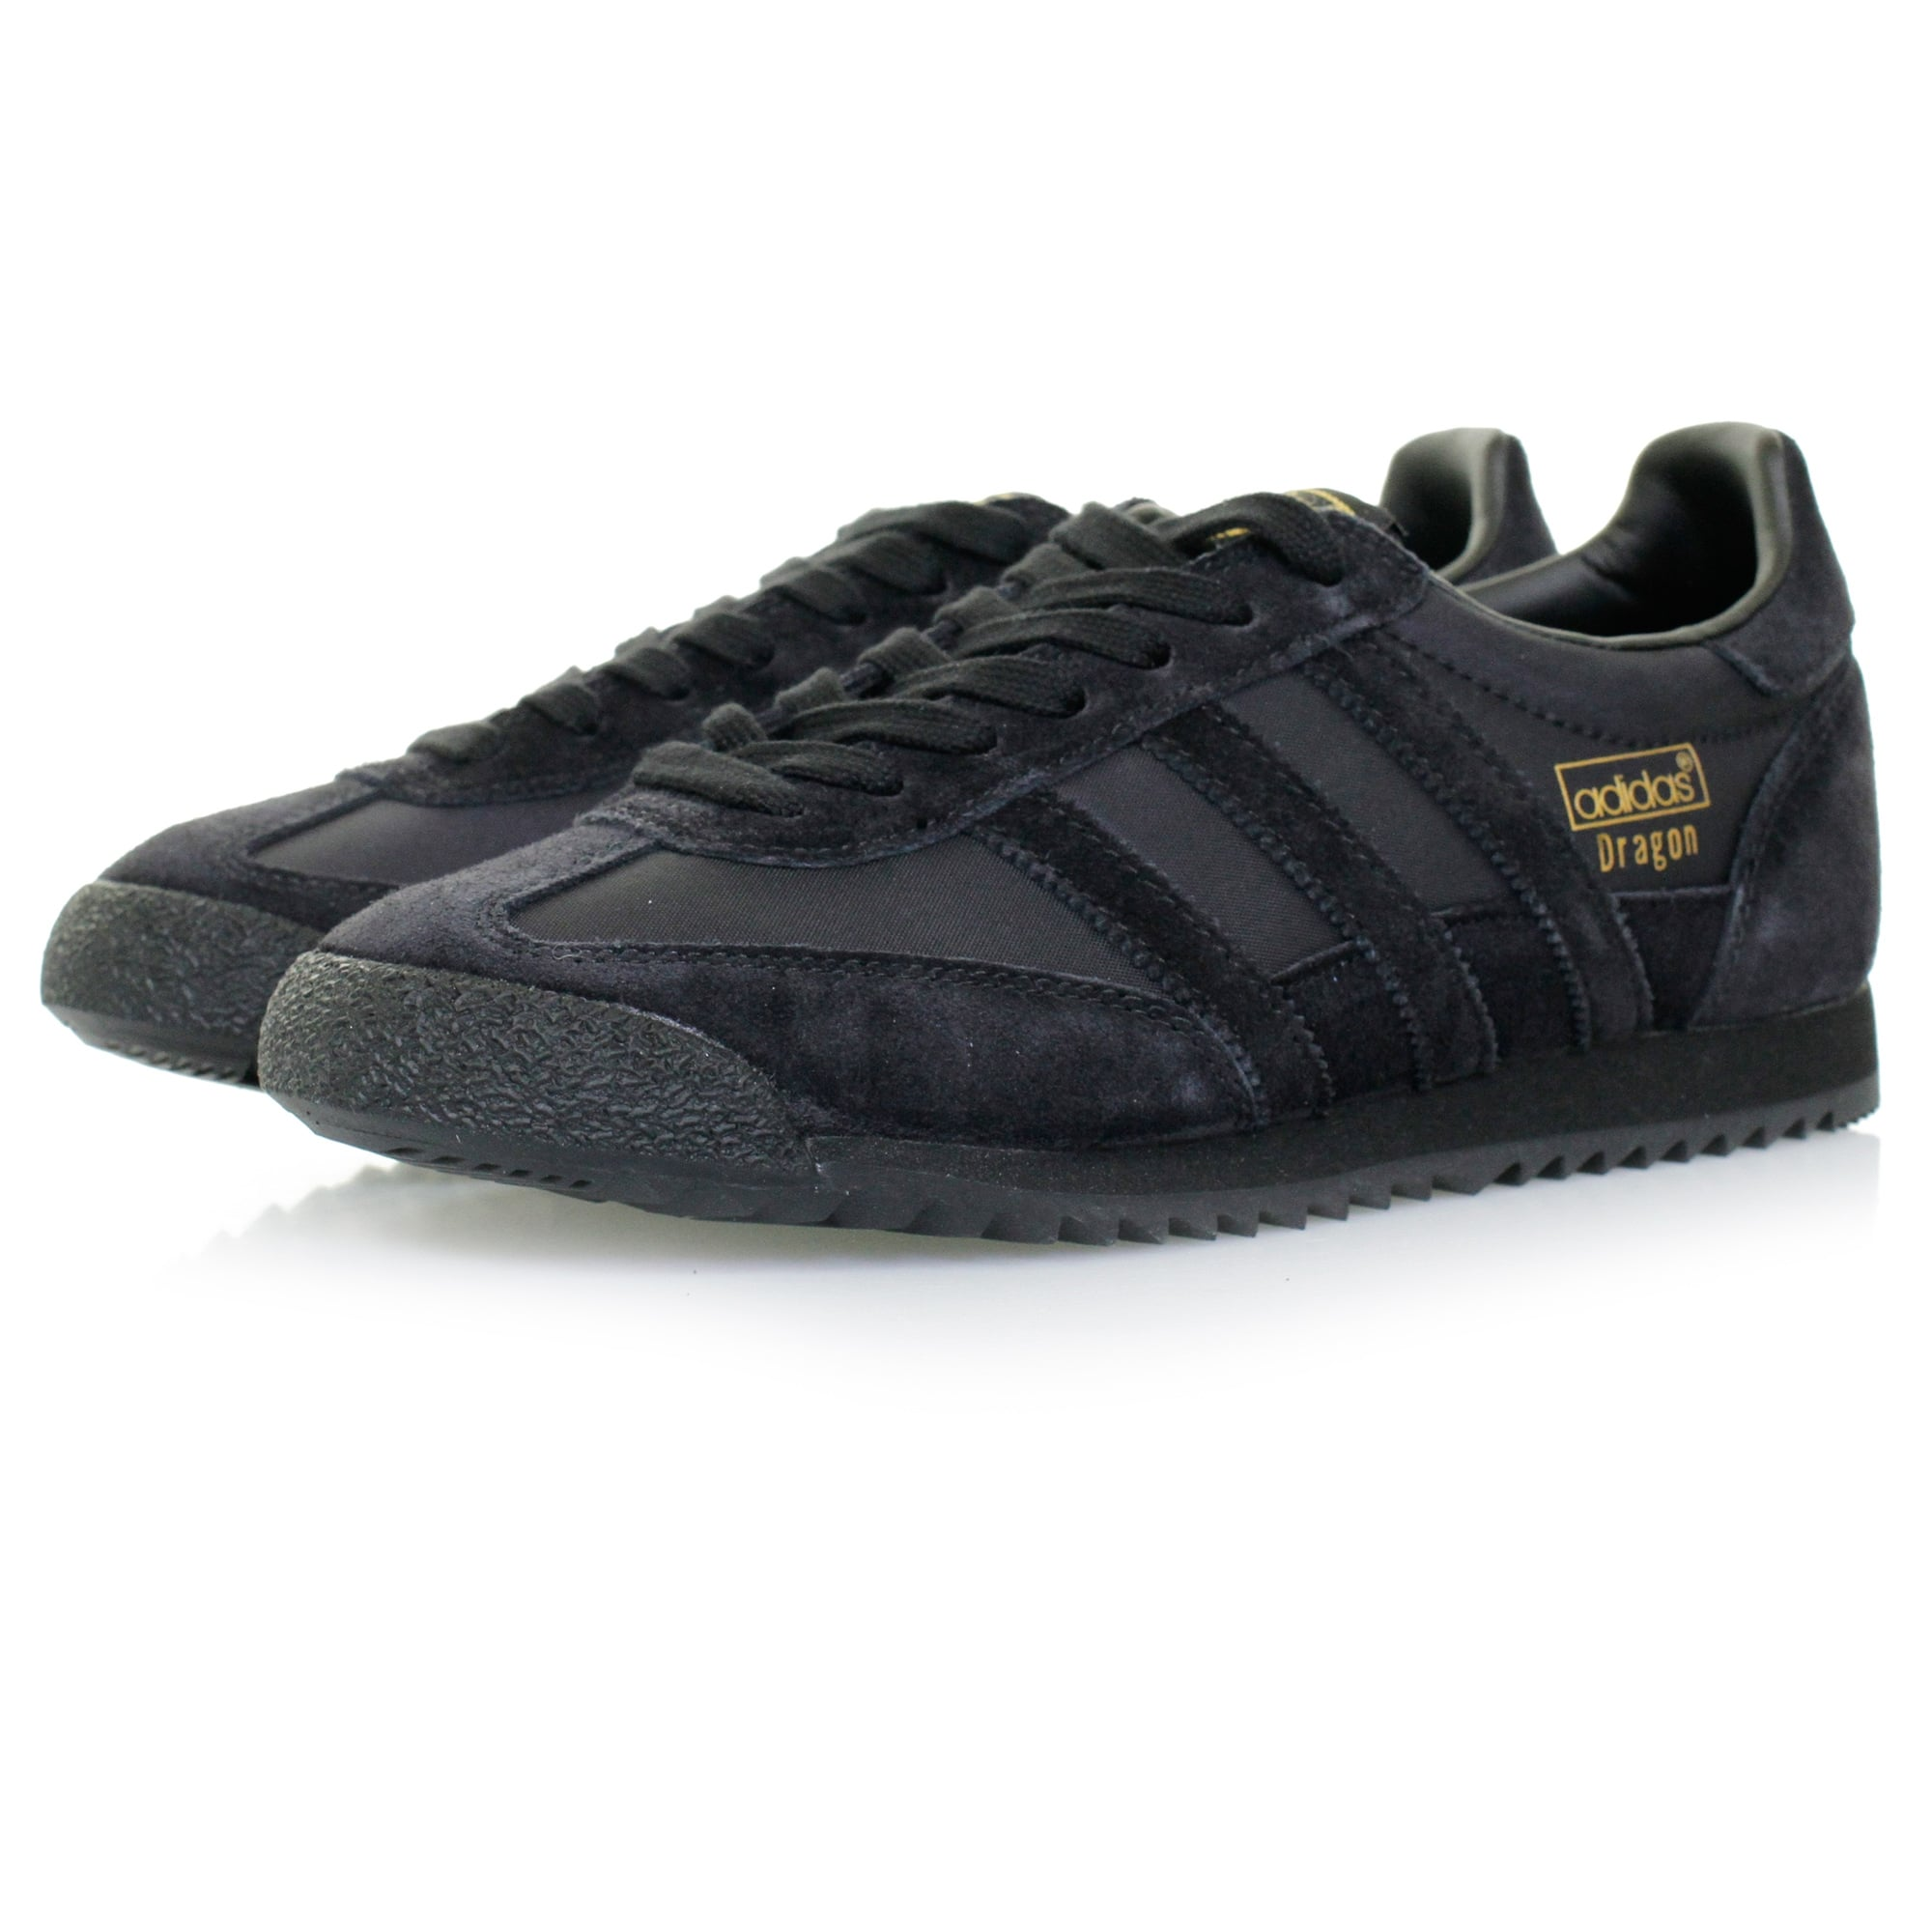 adidas dragon og all black